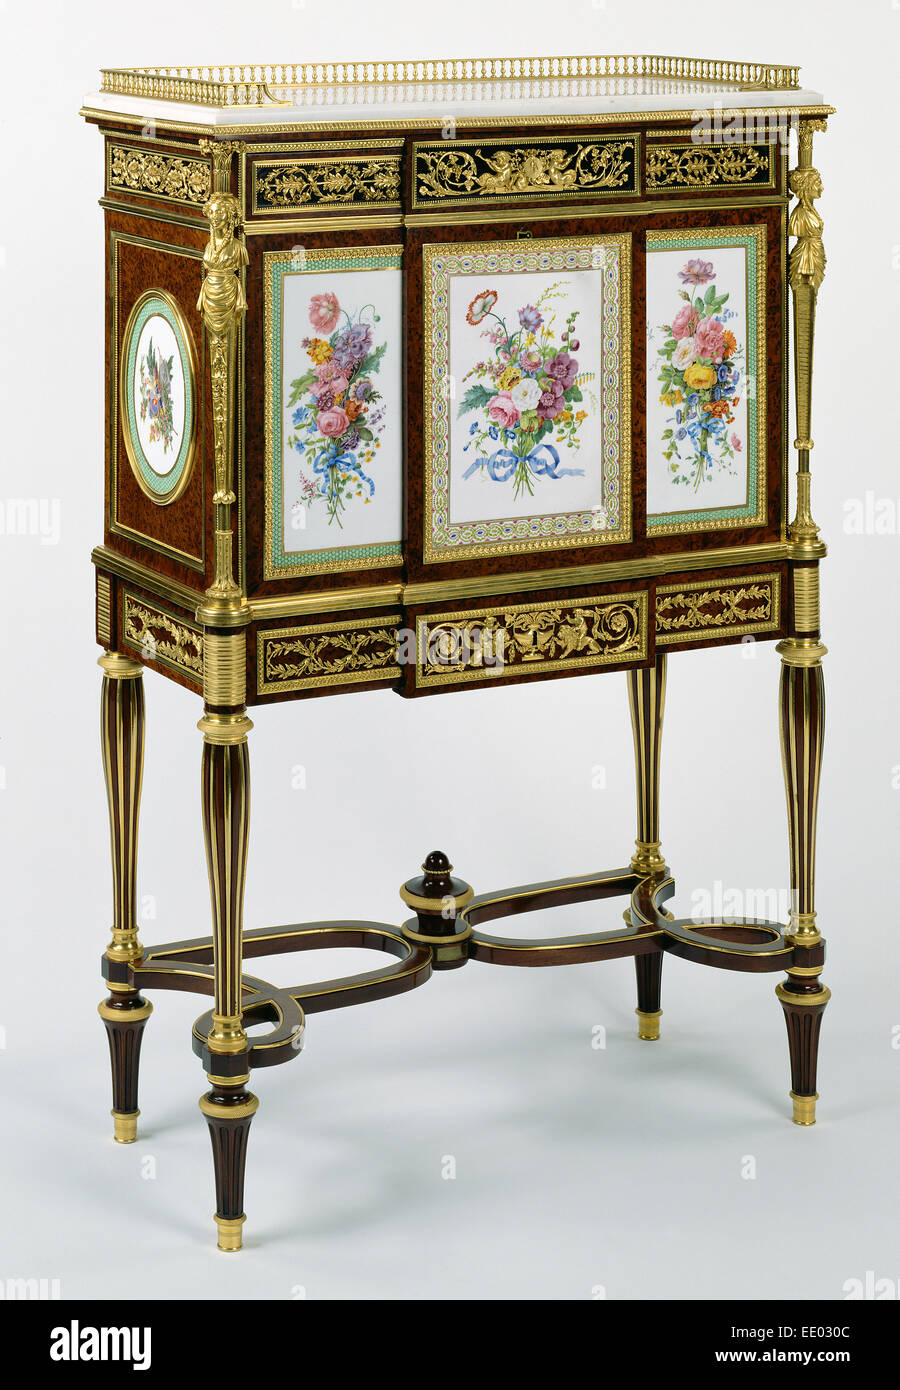 Secrétaire; Attributed to Adam Weisweiler, French, 1744 - 1820, master 1778, active until 1809 - Stock Image